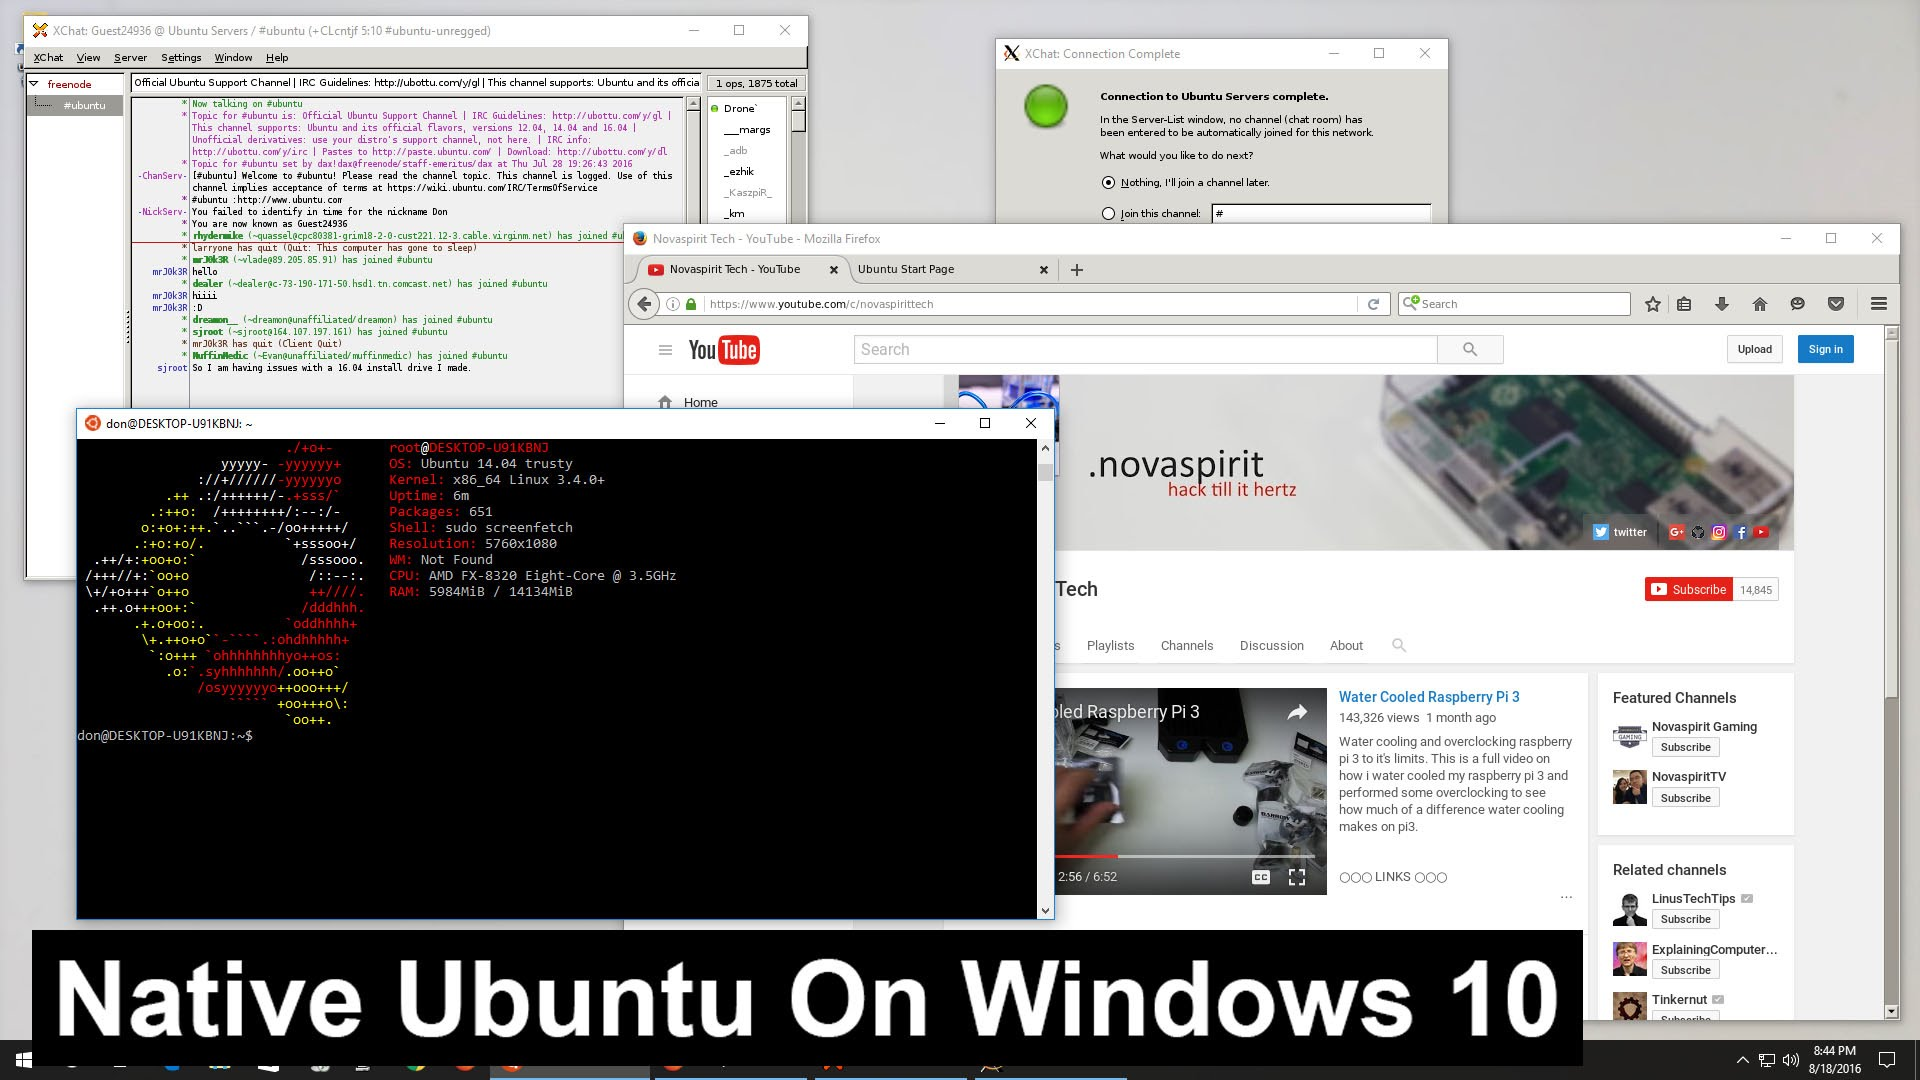 Native Ubuntu on Windows 10